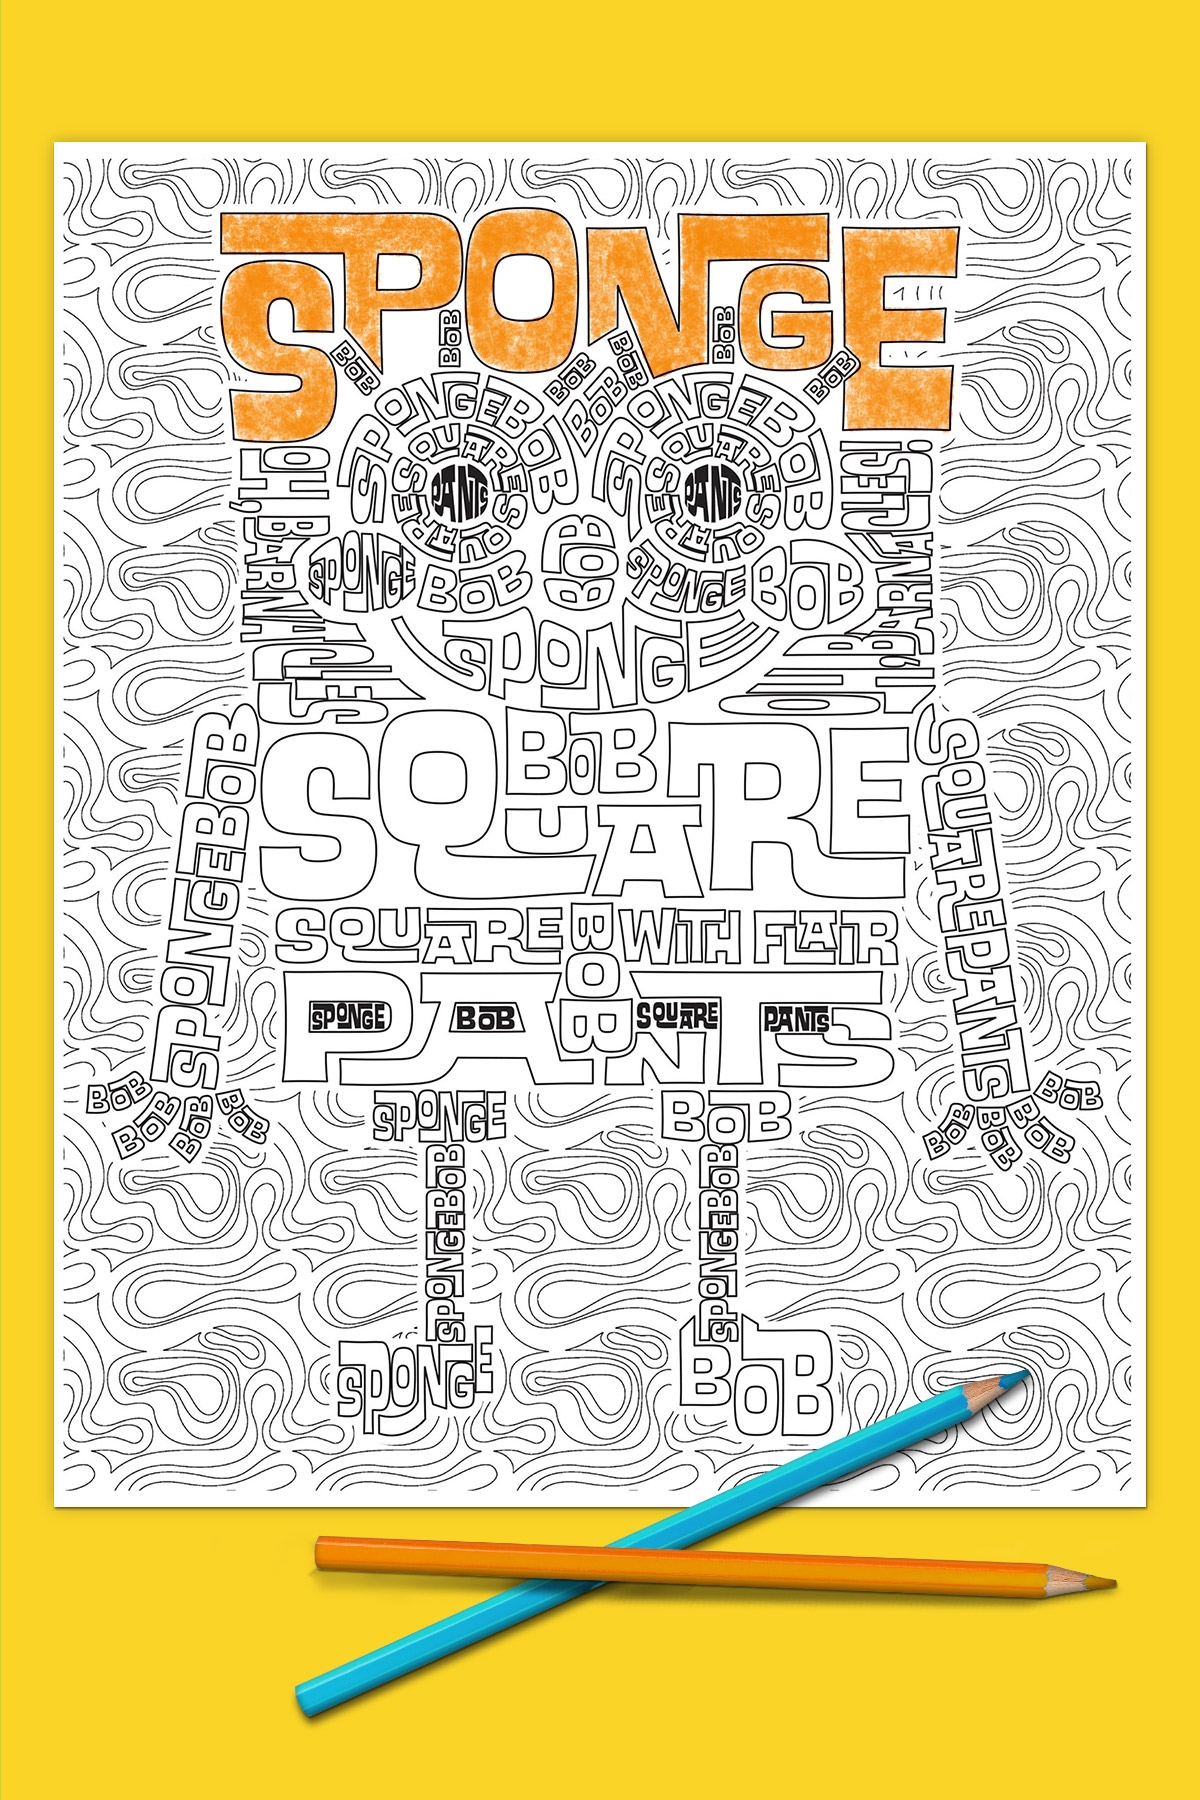 july 4th coloring pages printable - spongebob adult coloring page